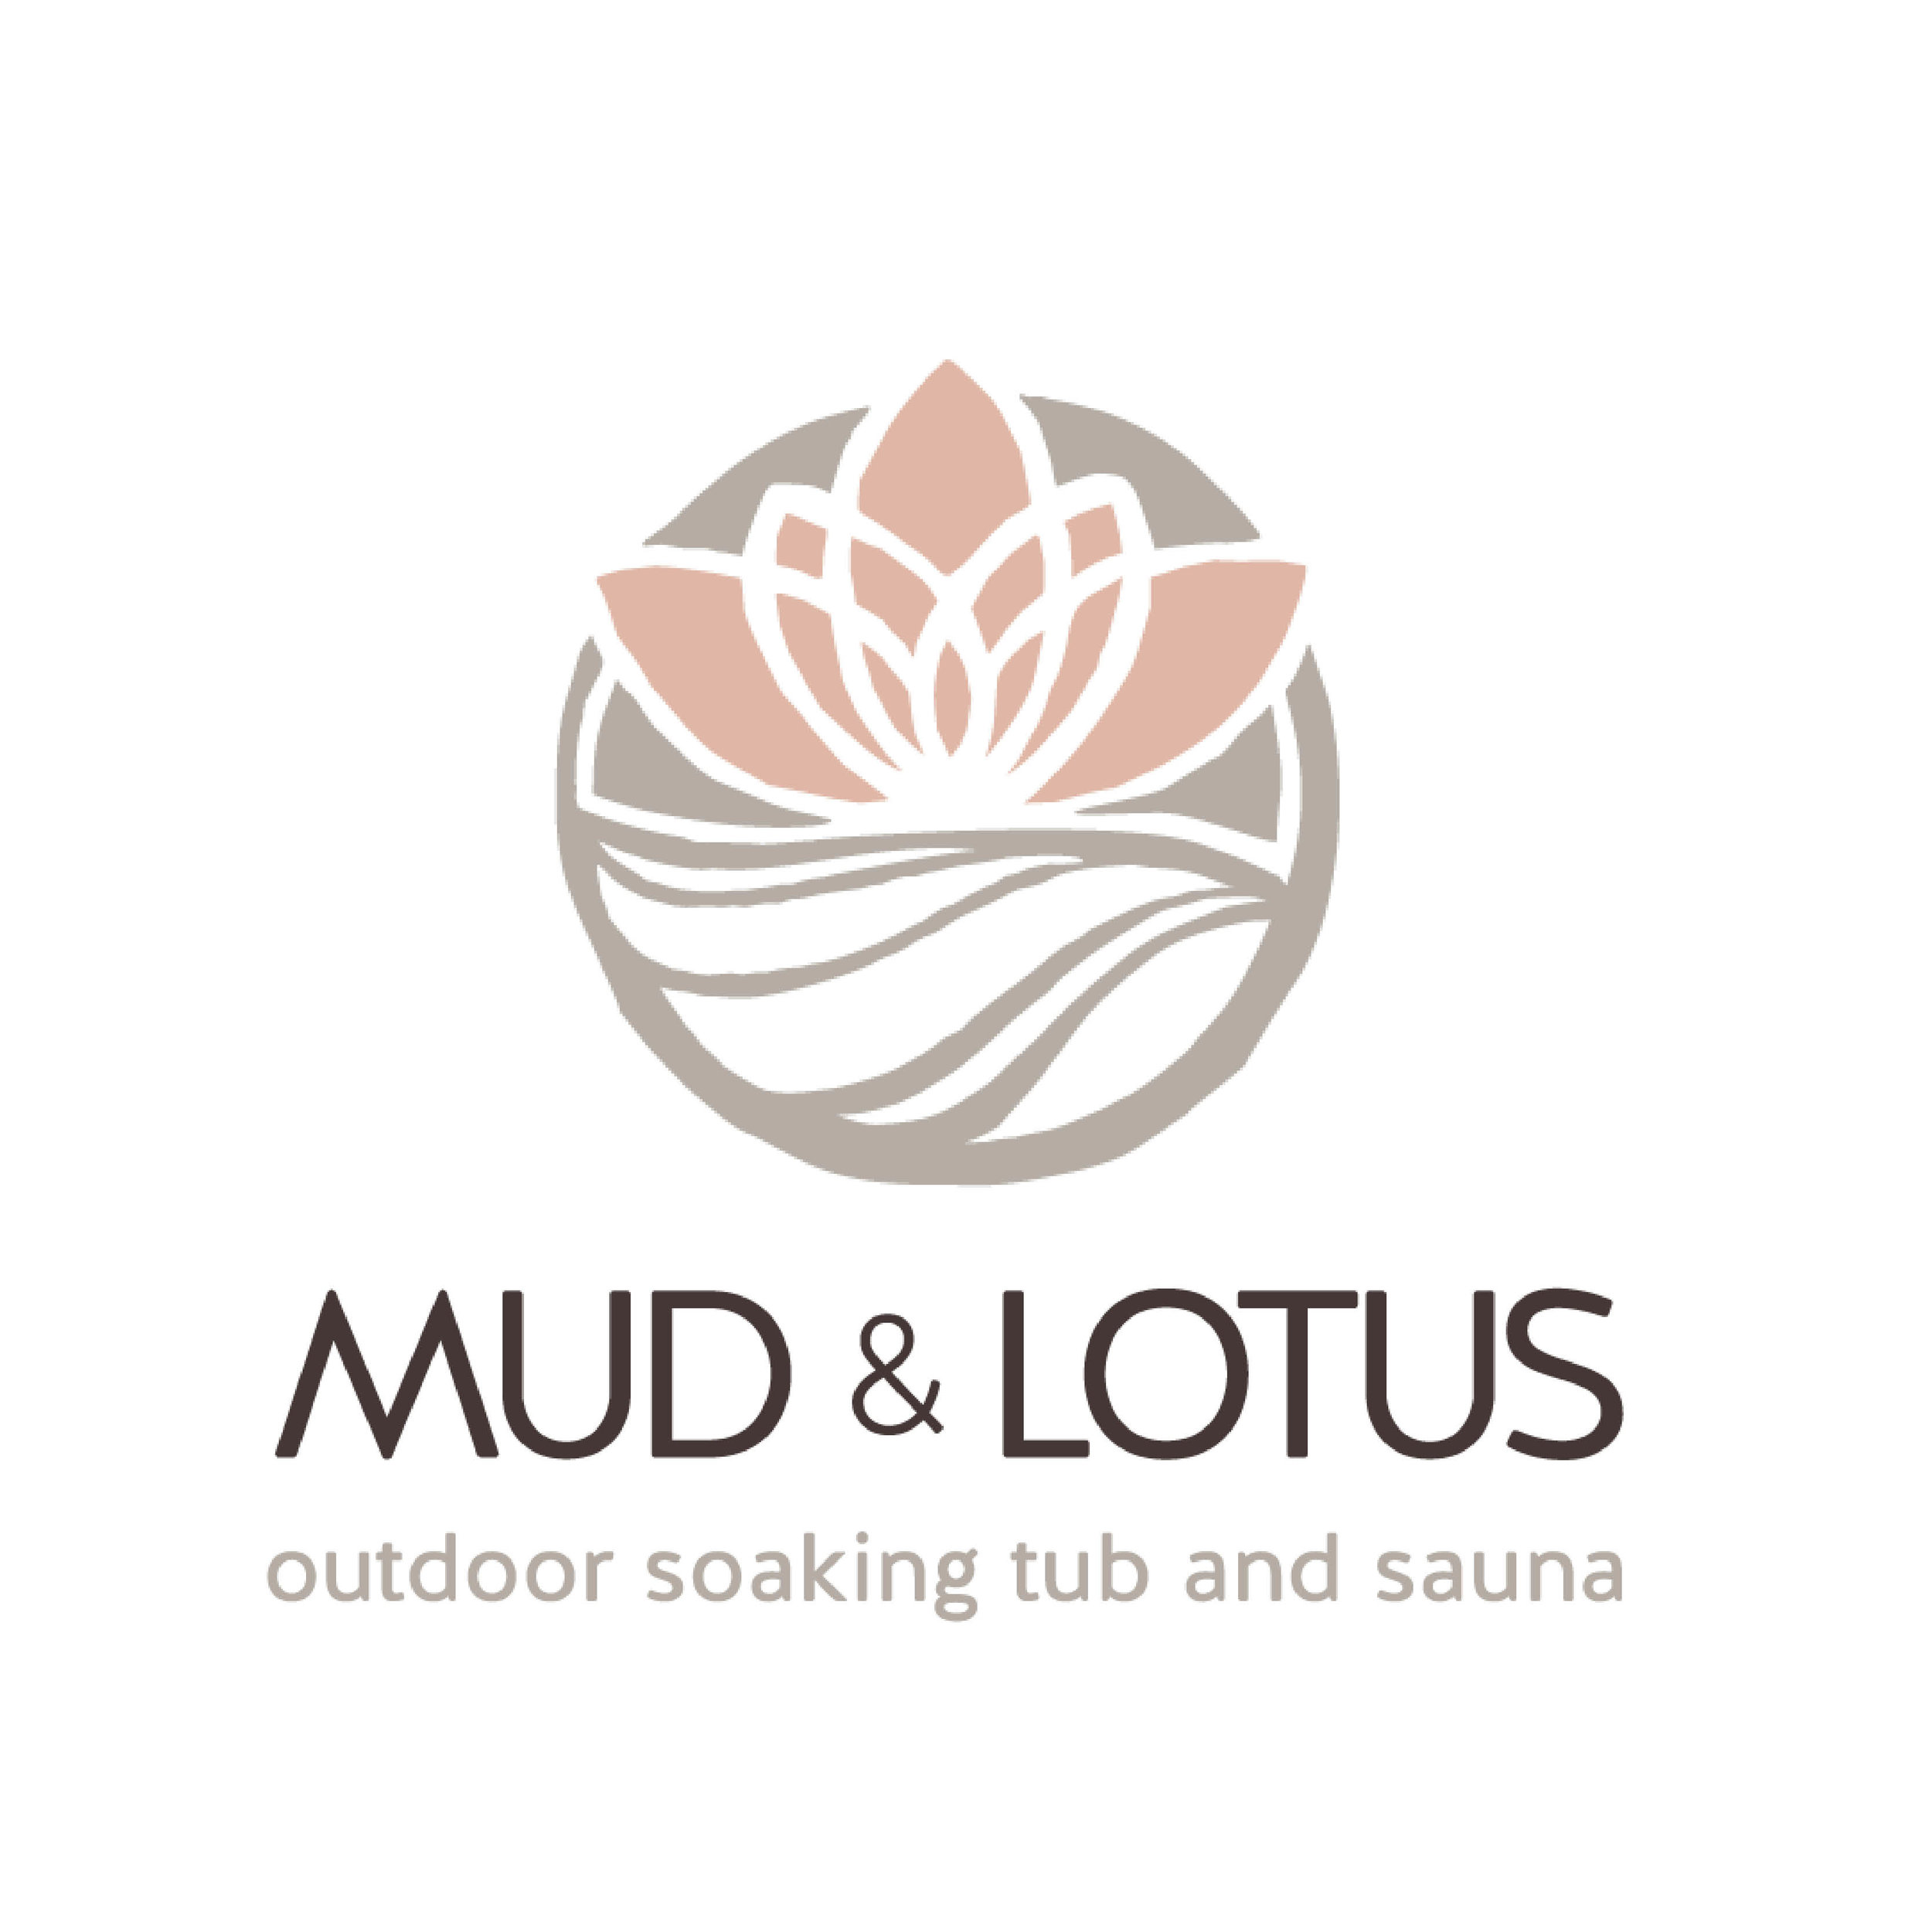 $5 off for a 50 min. 1-2 person soak n sweat session at Mud & Lotus  $8 off for a 50 min. 3 person soak n sweat  $30 off for a 80 min. 4-5 person soak n sweat